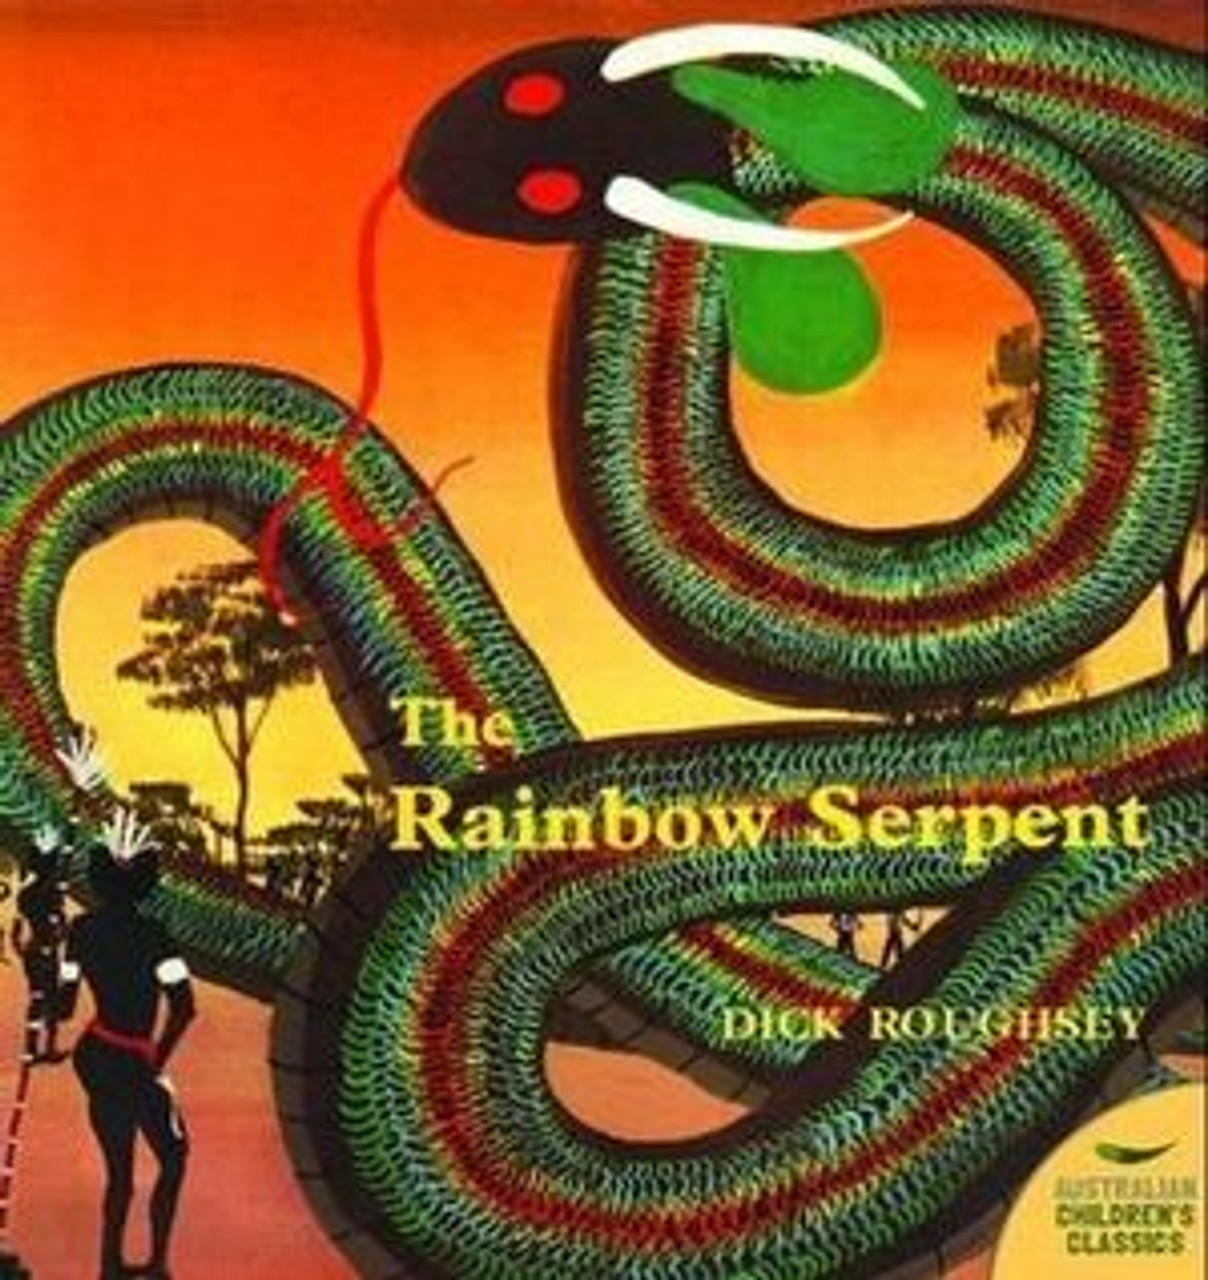 Australian Children's Classics - The Rainbow Serpent